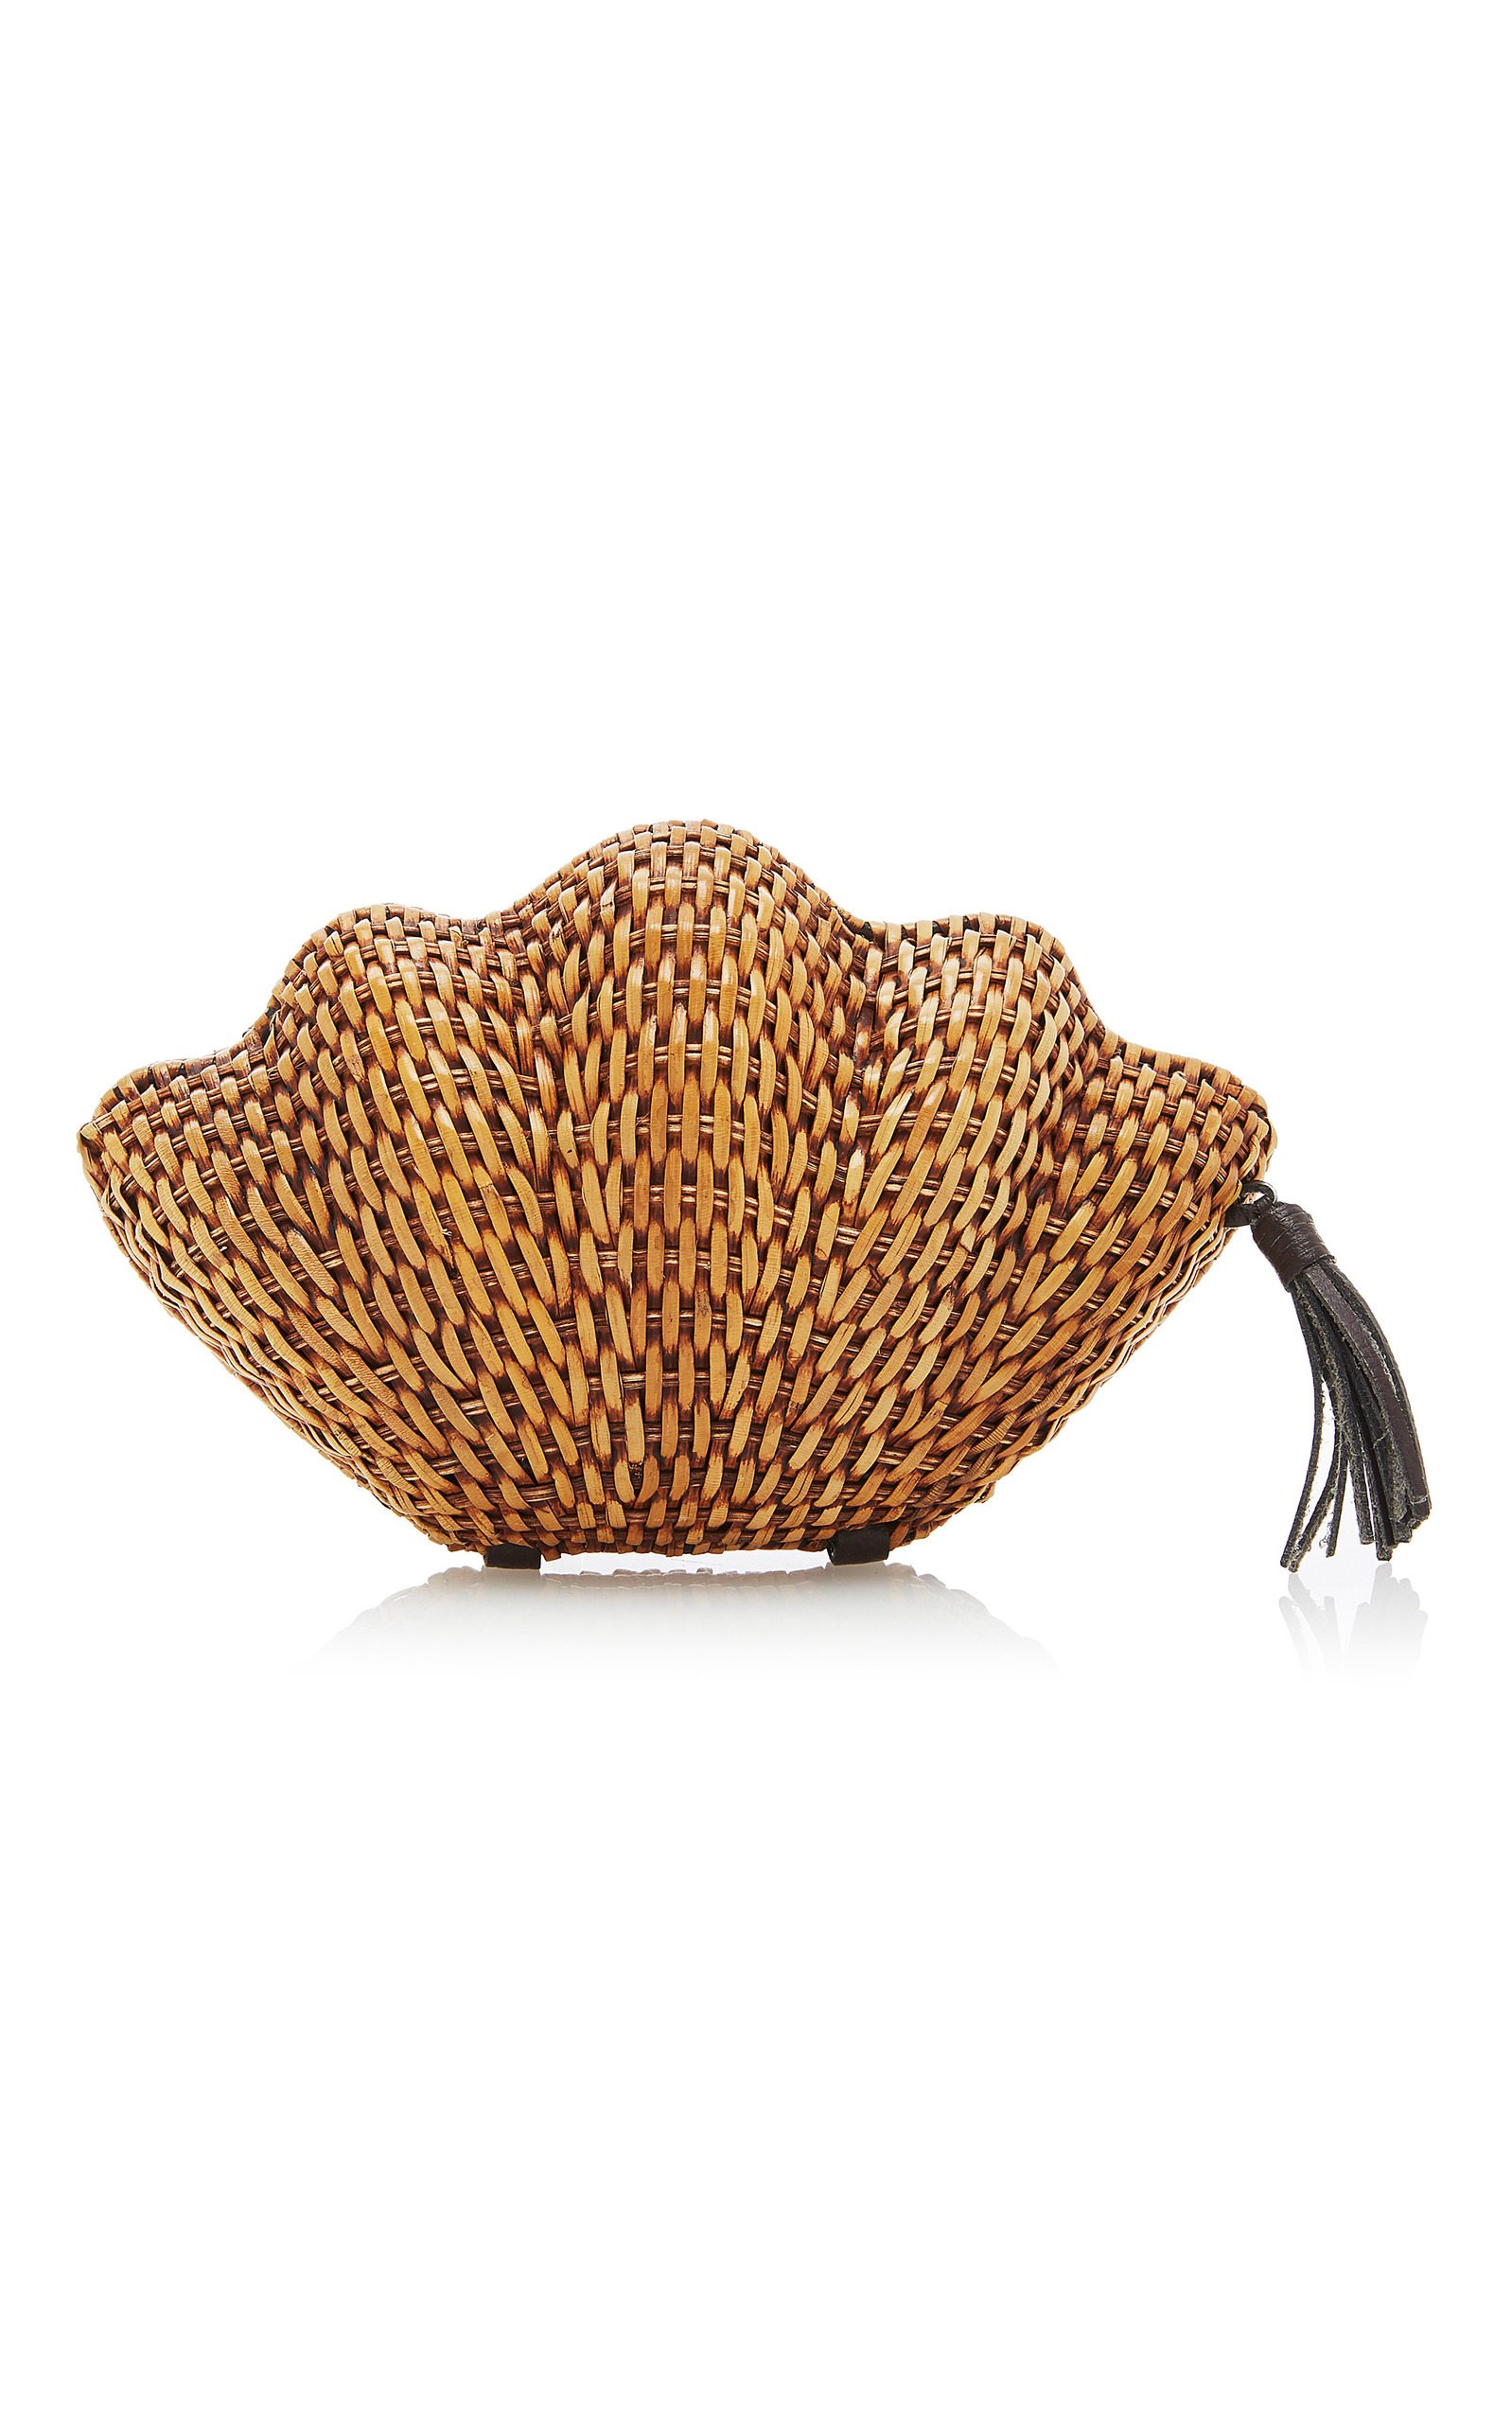 Cheap Sale Excellent Outlet Wide Range Of Jane Clam Wicker Clutch Kayu The Cheapest Sale Online Buy Cheap Latest Collections For Sale Cheap Online G7aQDeX